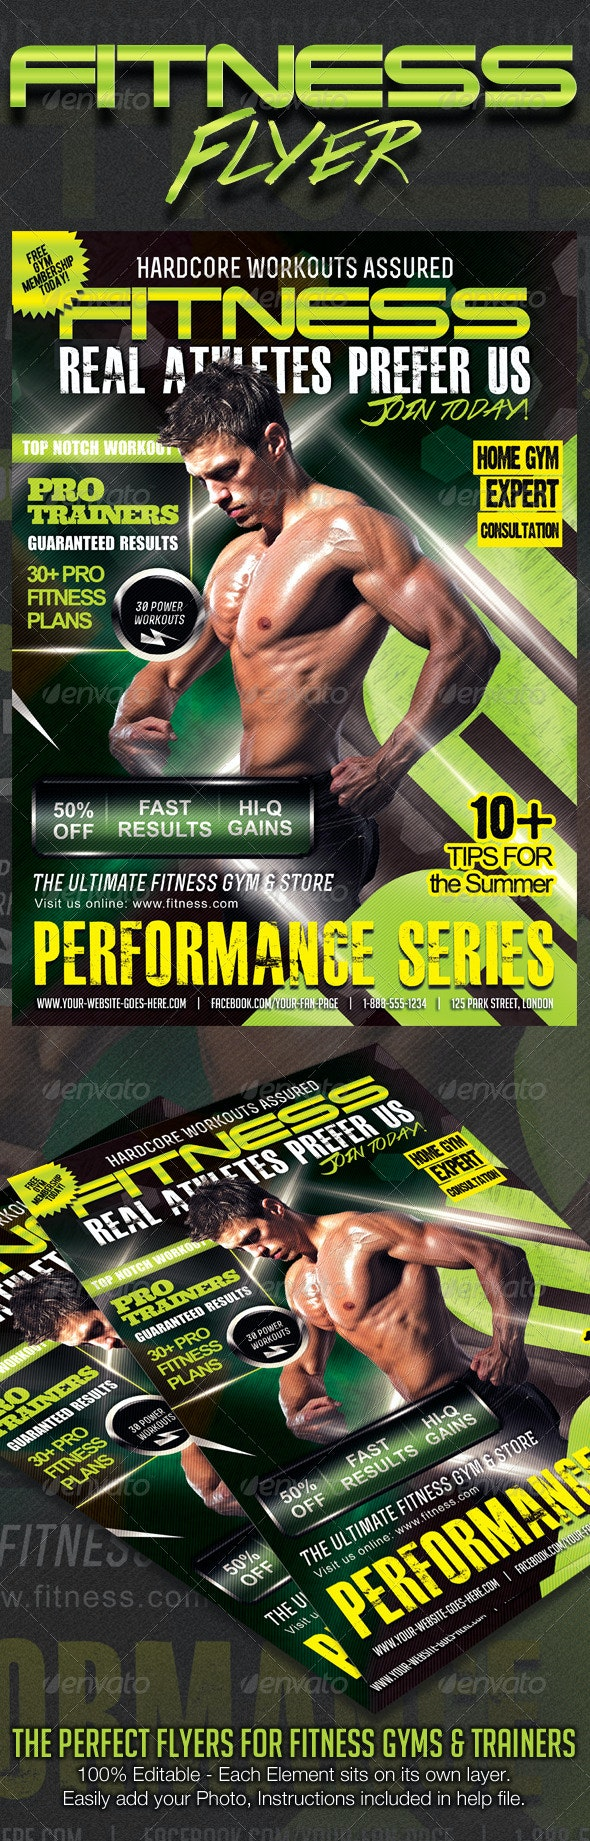 Ultimate Performance Fitness Flyer - Corporate Flyers